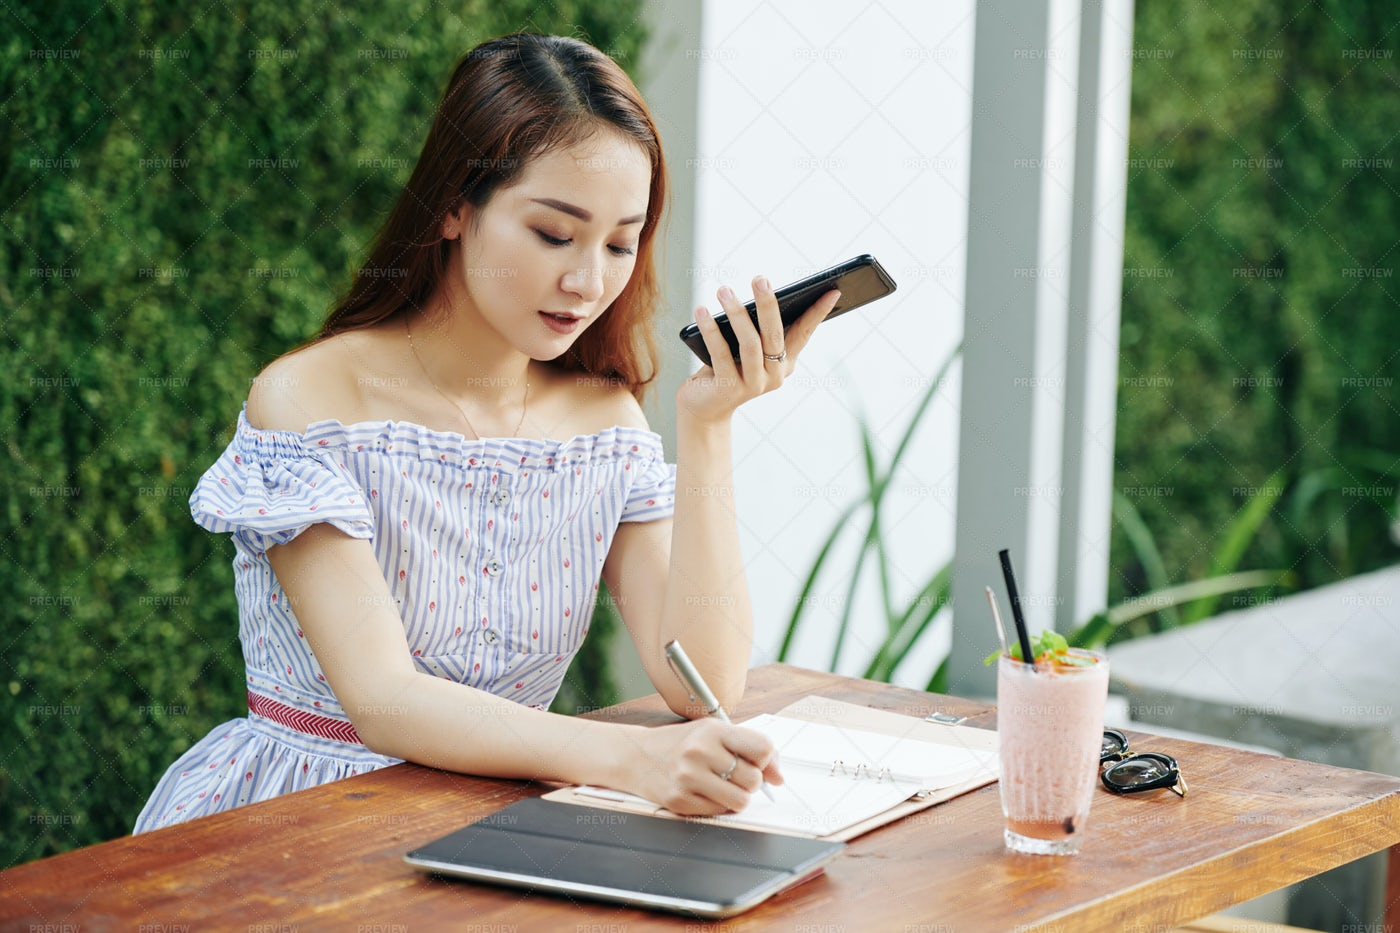 Woman Listening To Voice Message: Stock Photos